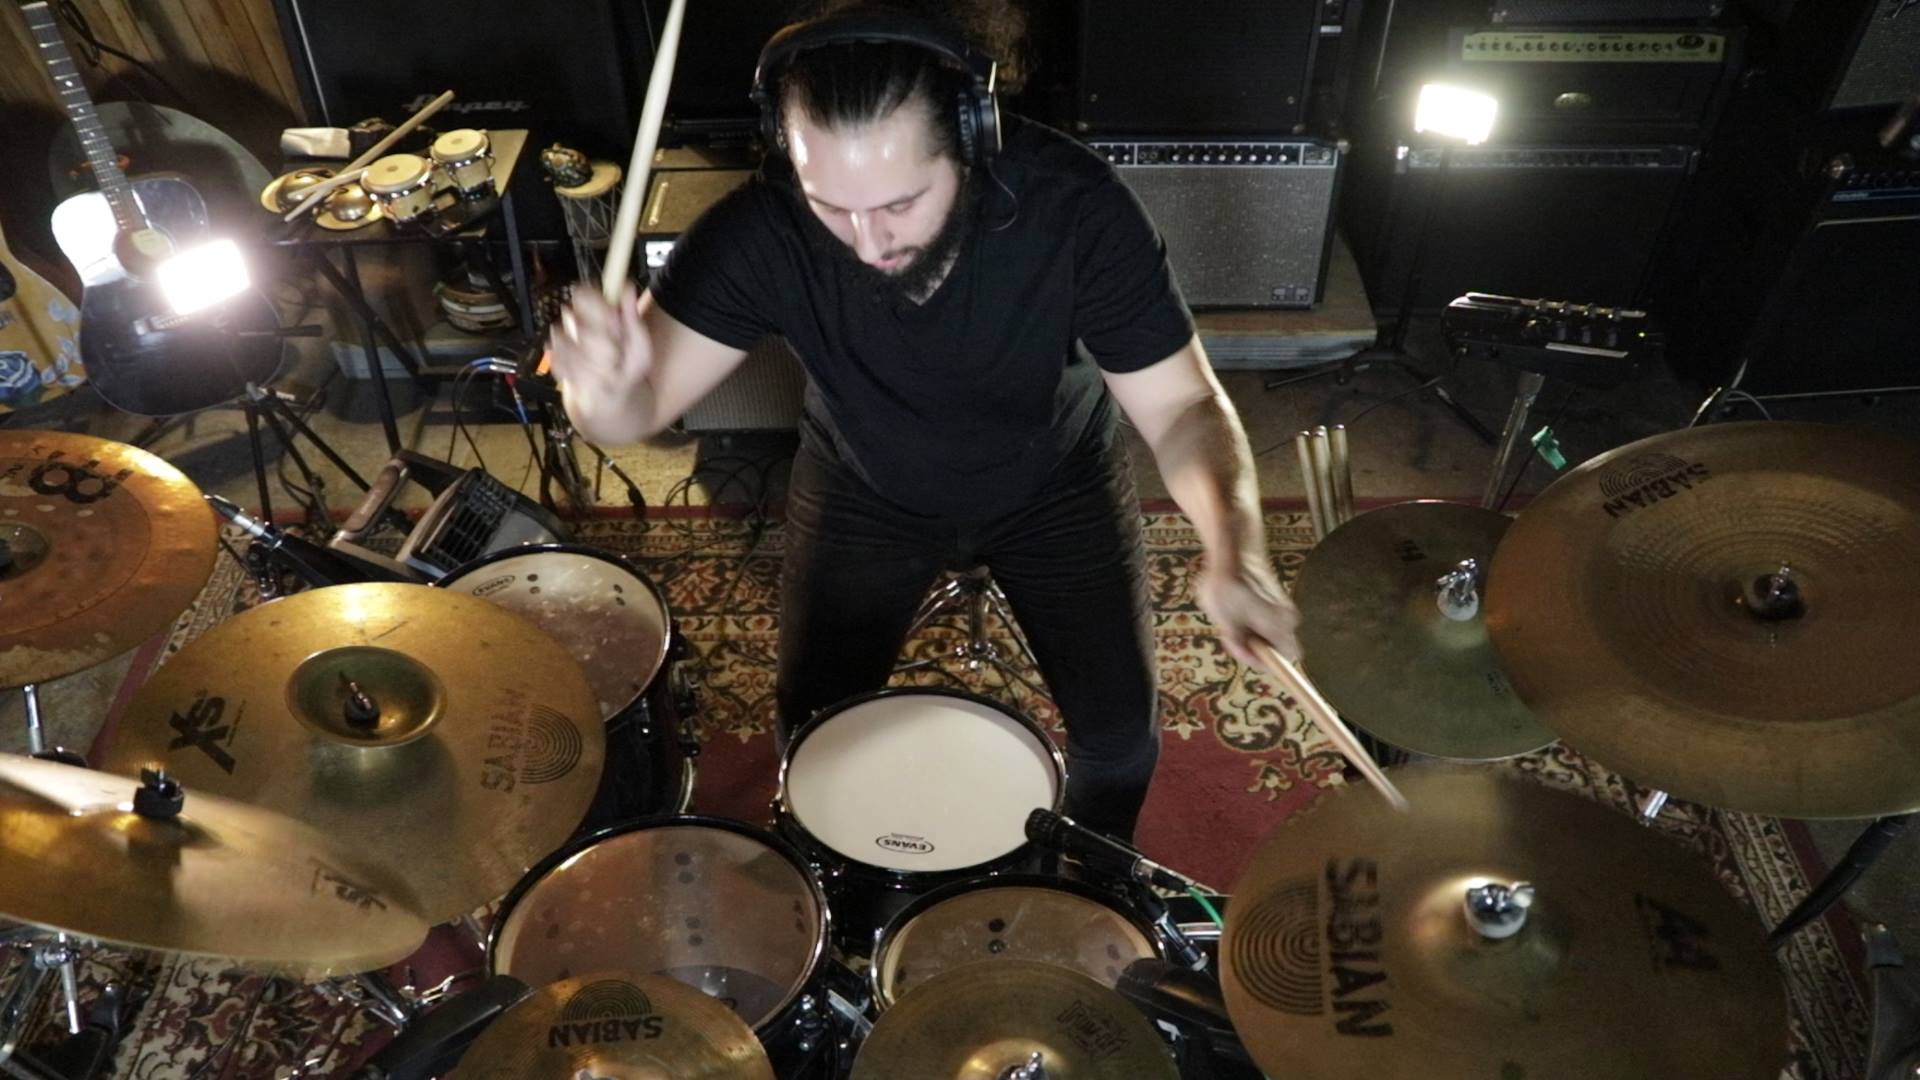 """The Last of Lucy Remind Us of Their Skills in an """"Advertent Avidity"""" Drum Video"""